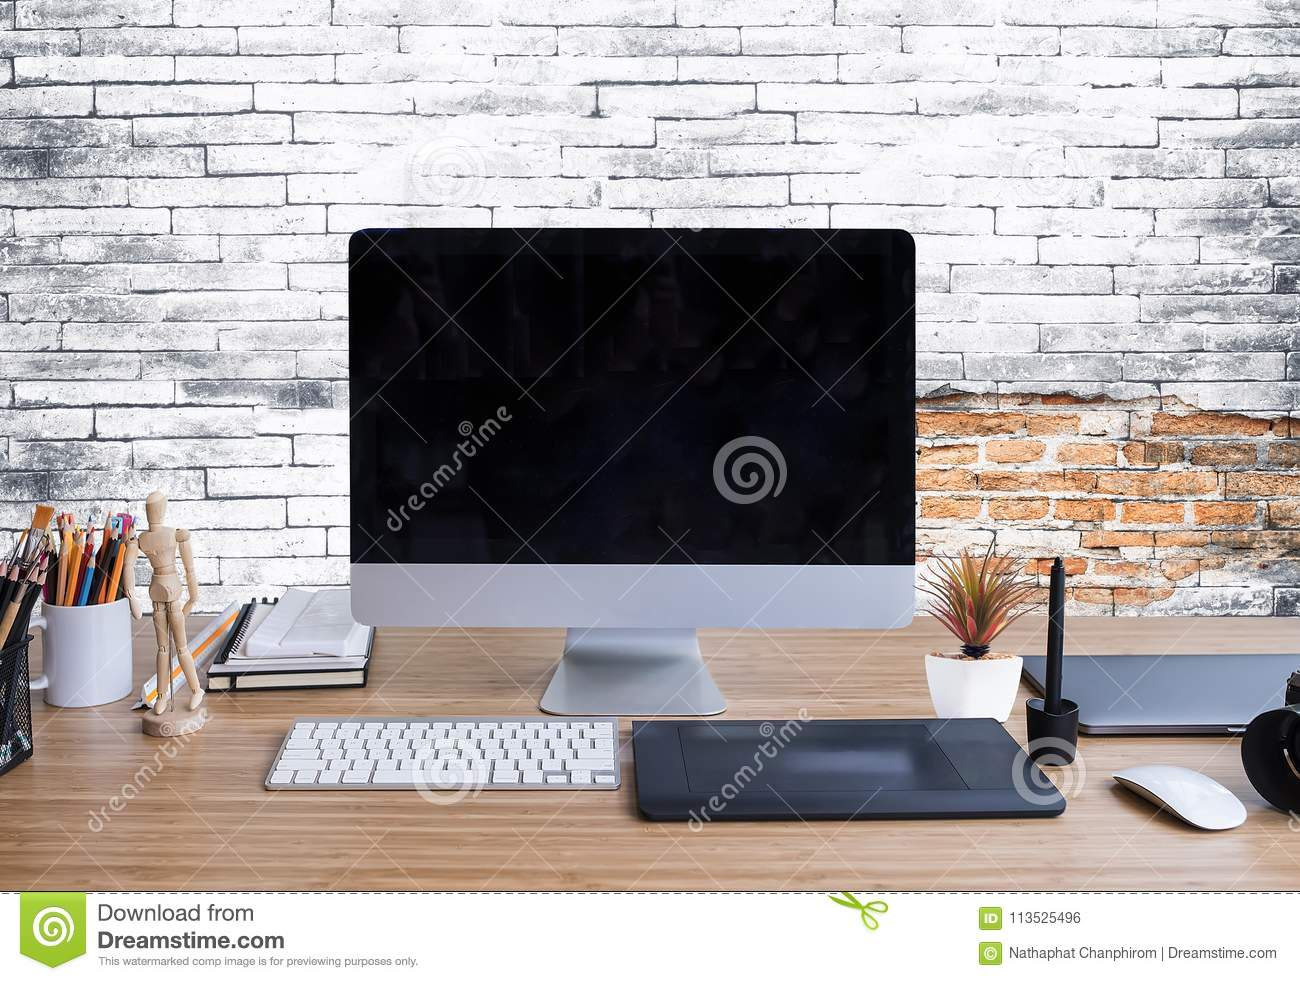 Stylish Workspace With Desktop Computer, Office Supplies And Lap